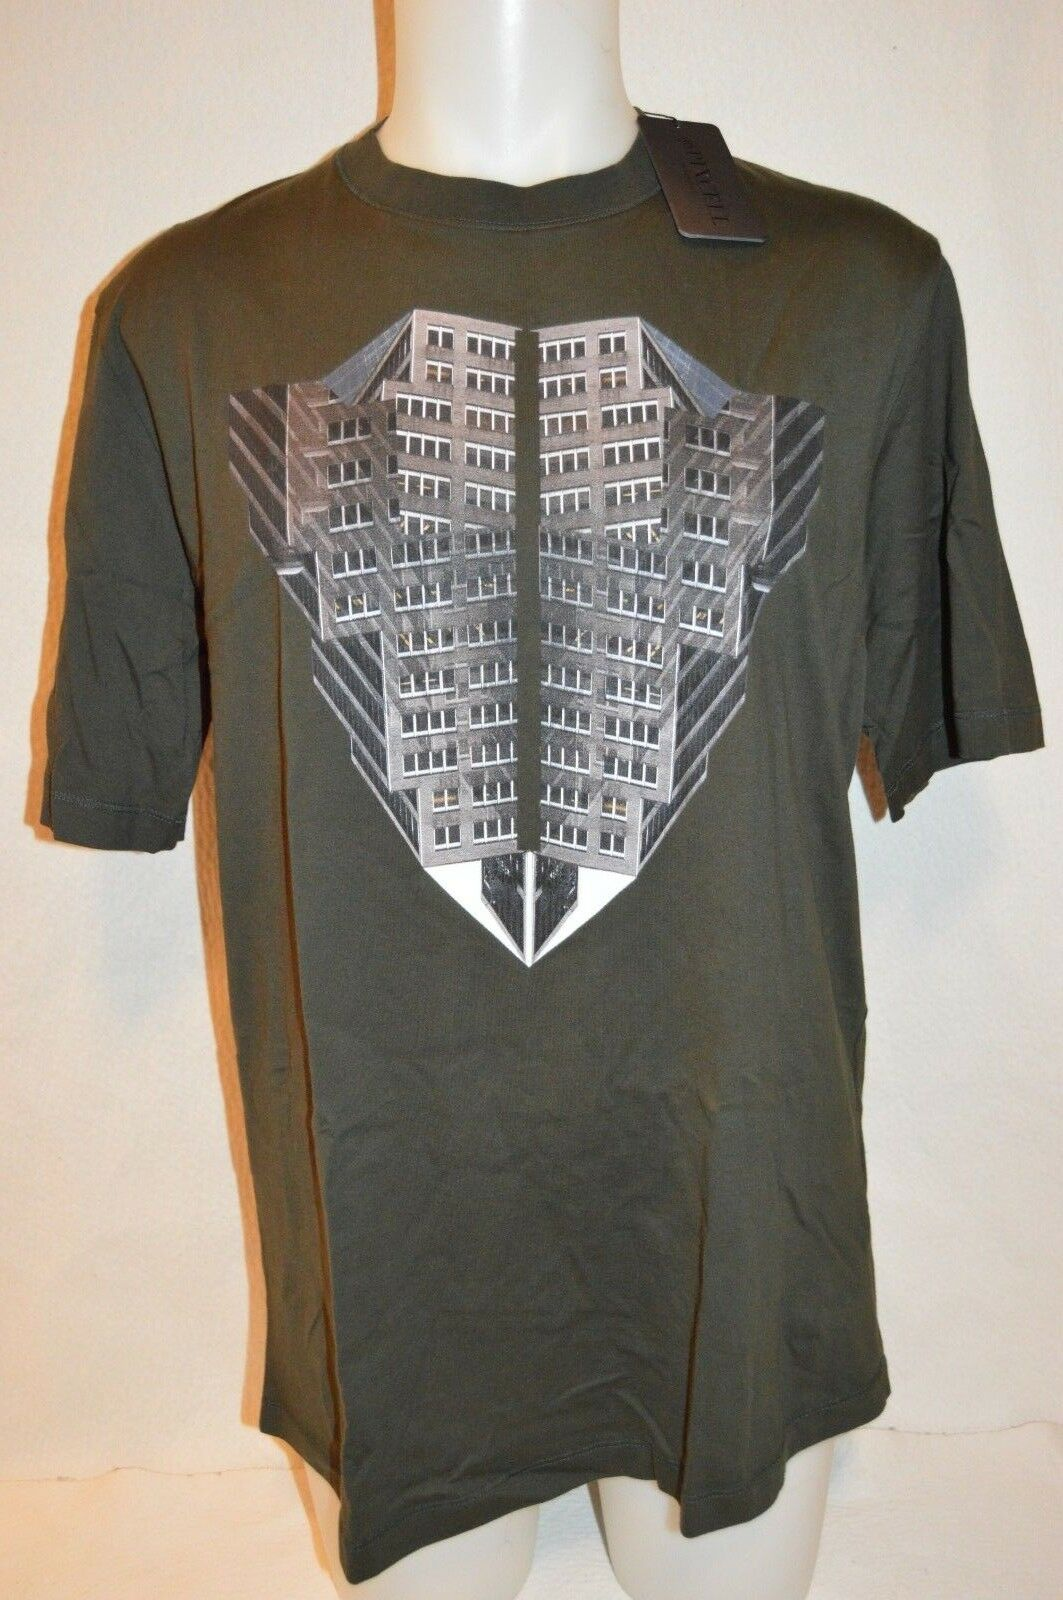 36PIXCELL Man's BUILDING PHOTOGRAPHY  T-shirt NEW Size X-Large  Retail